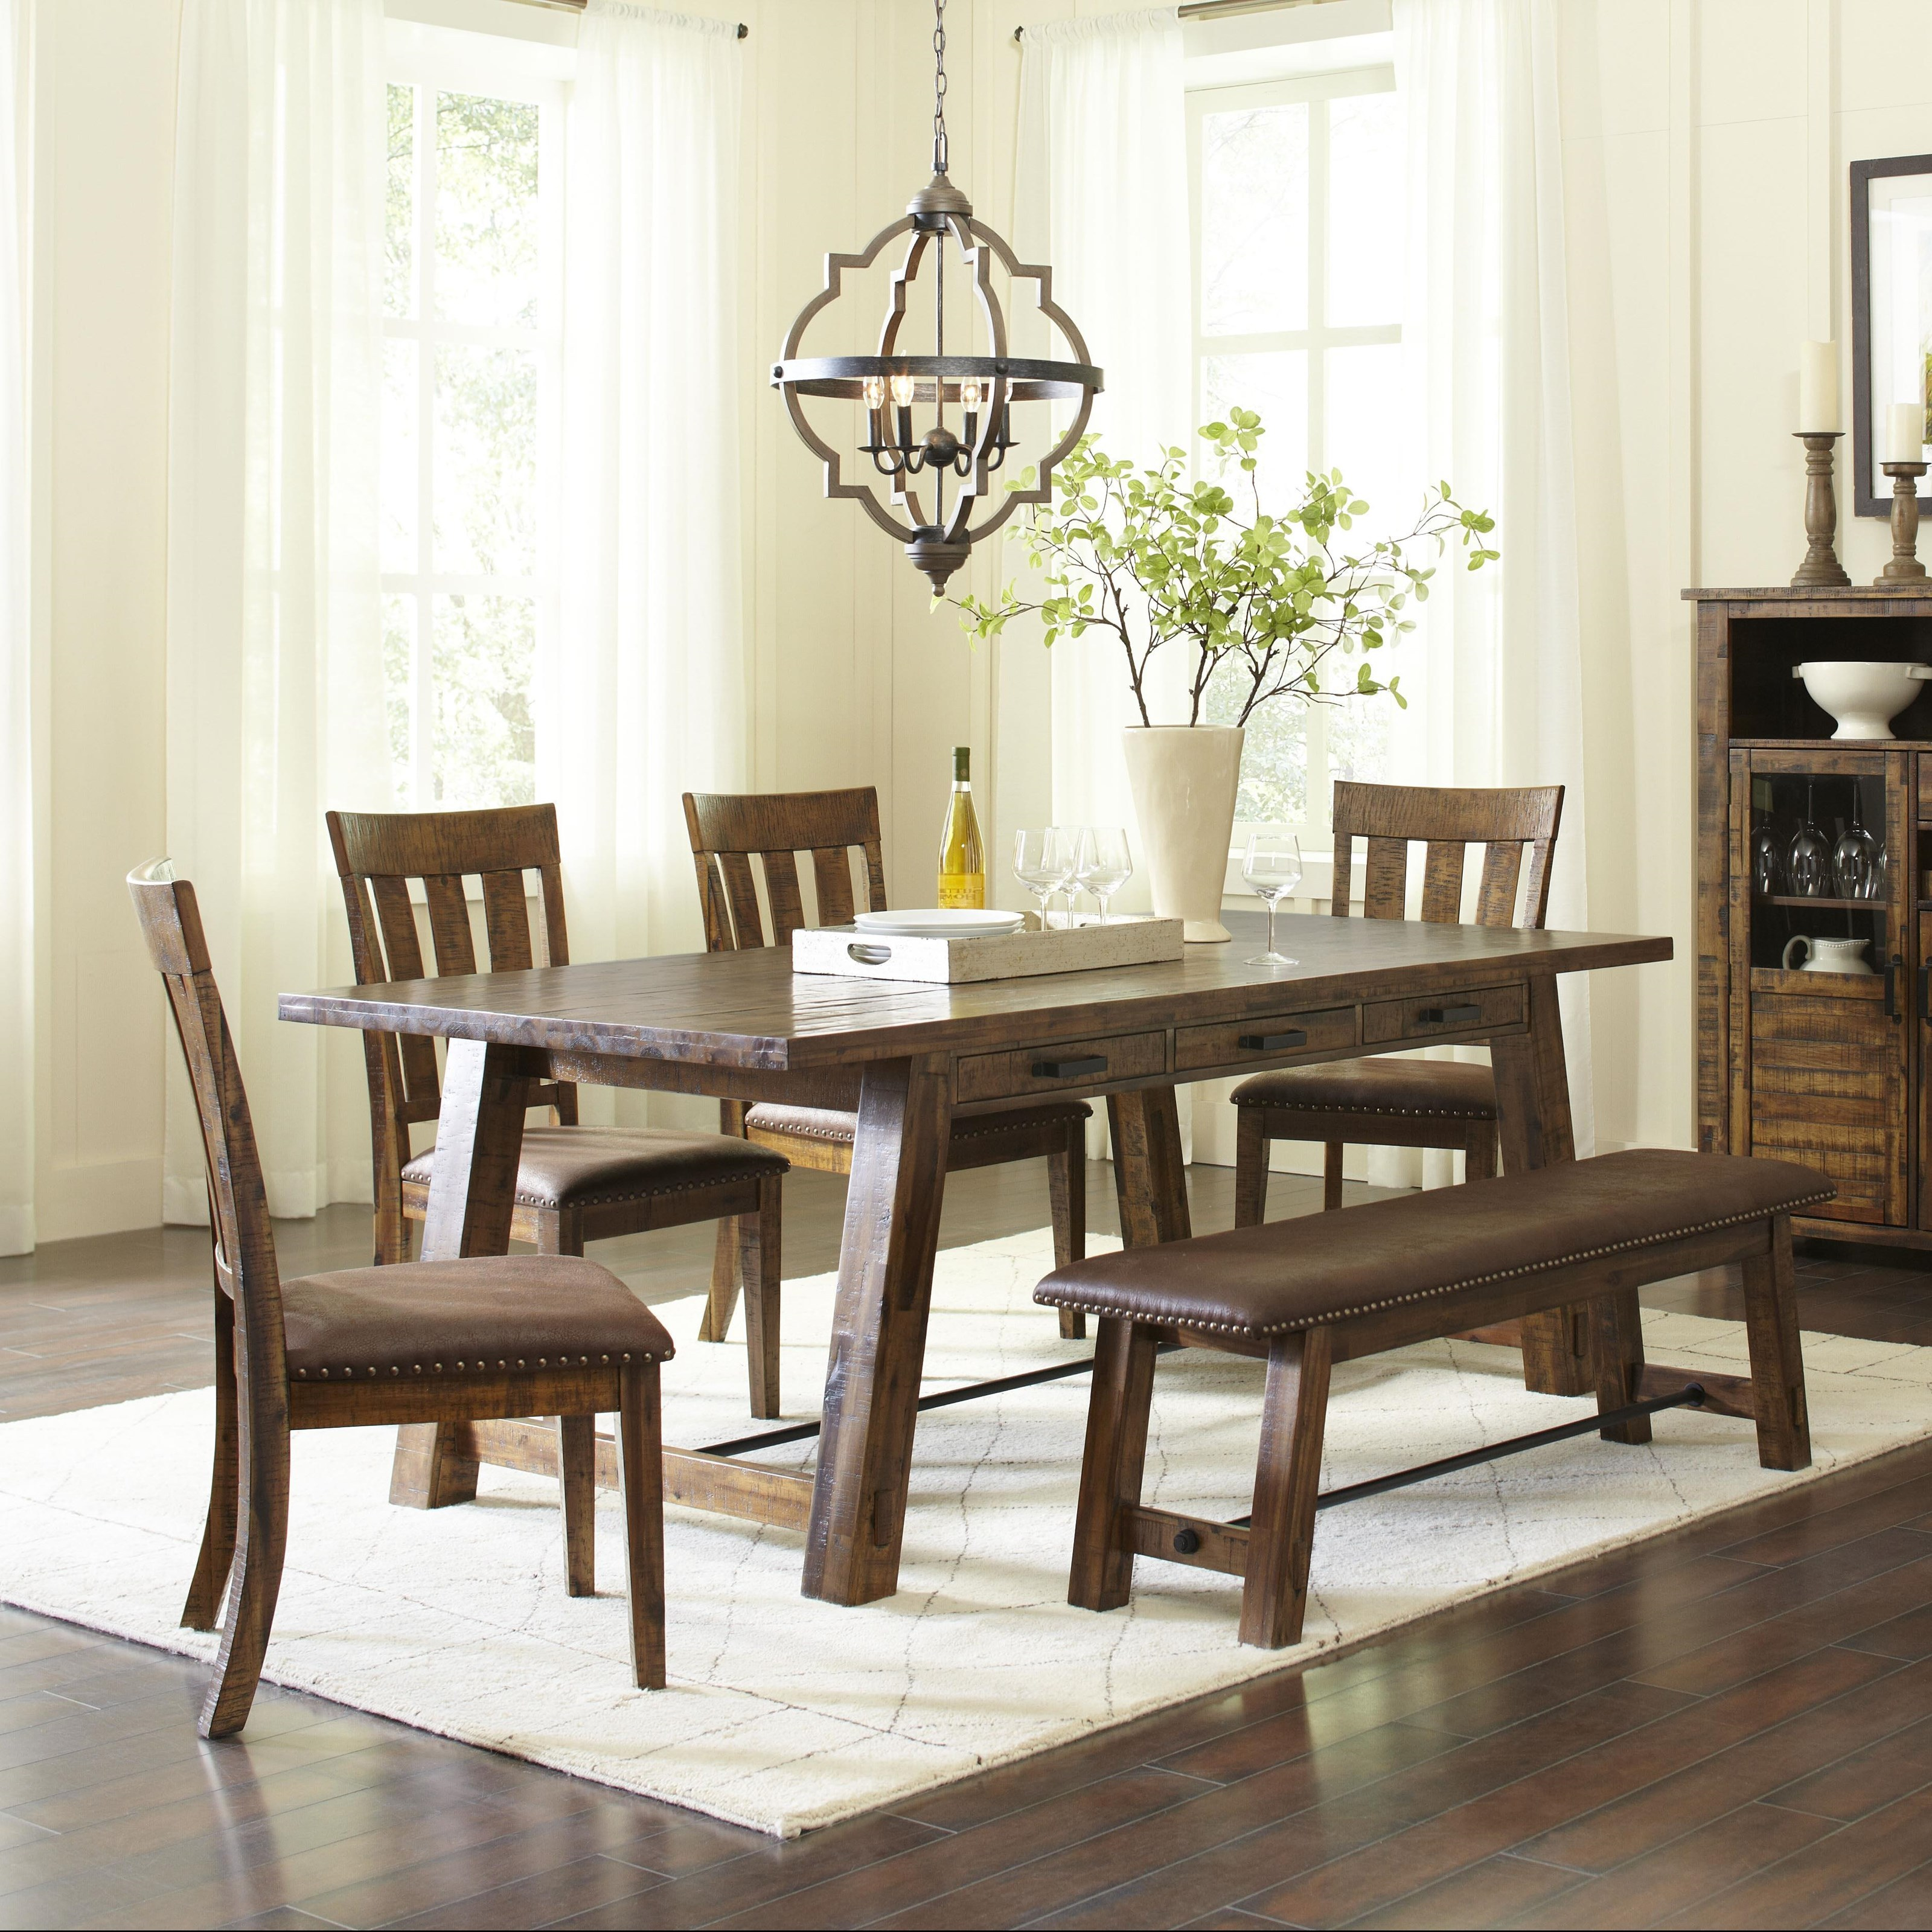 Jofran Cannon Valley Trestle Dining Table and Chair/Bench Set - Jofran